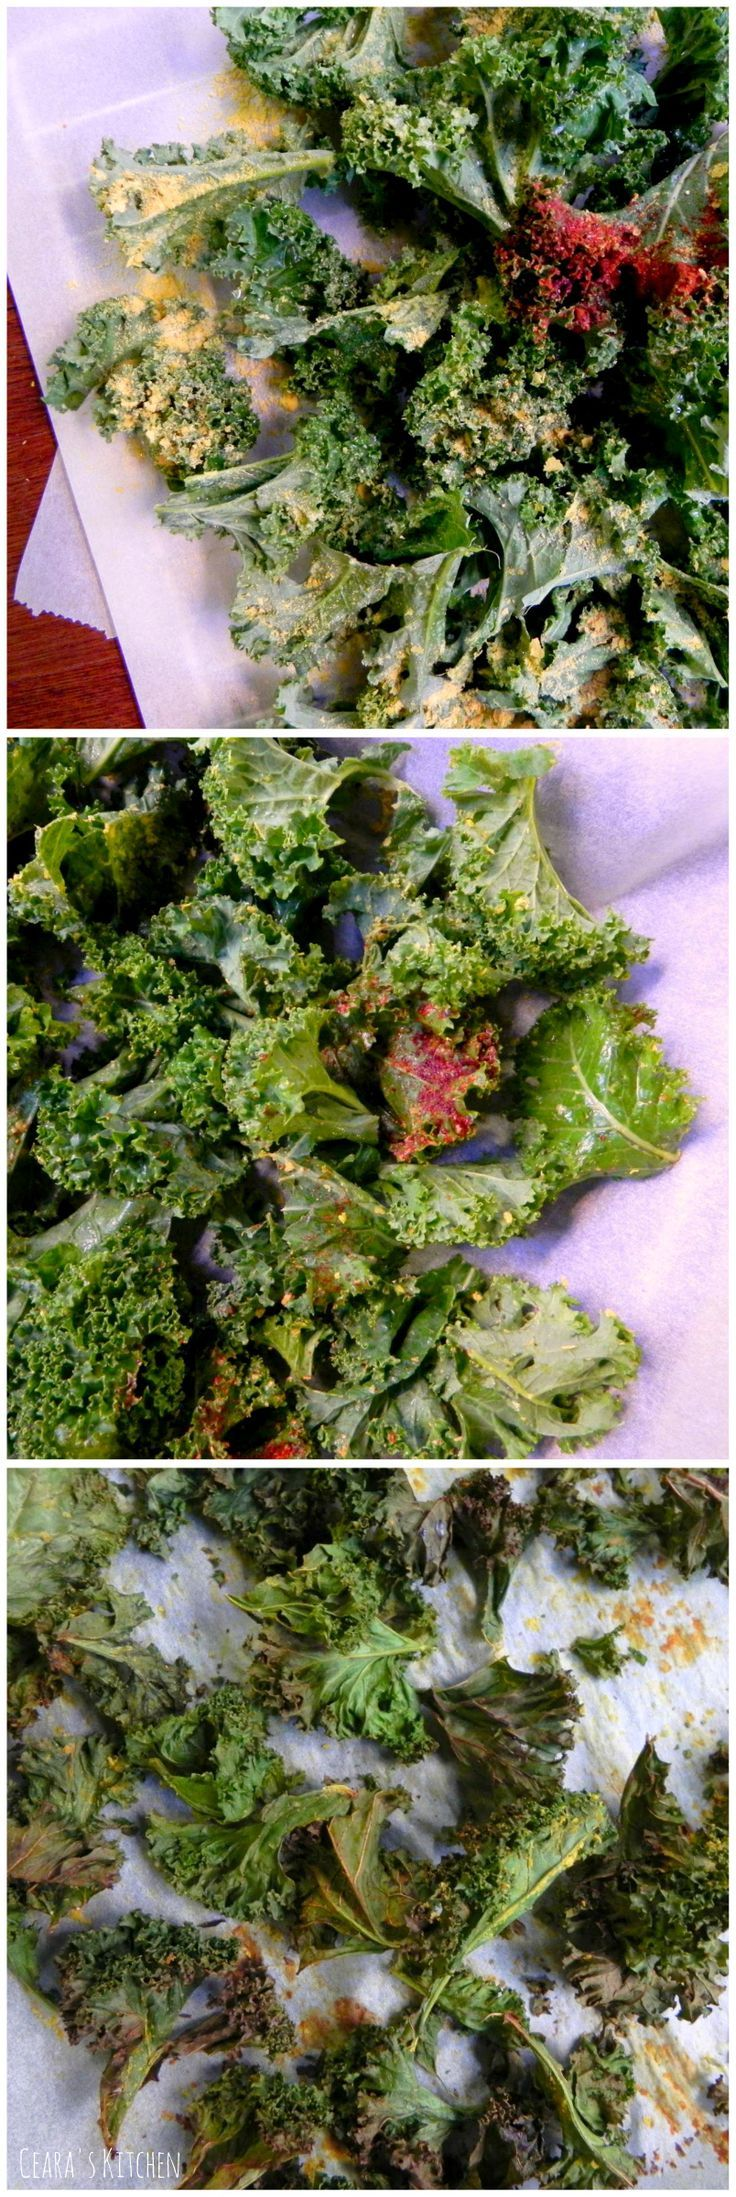 These CHEESY Oil Free Kale Chips are the best. They are cheesy, salty, savory and make the perfect #HEALTHY #VEGAN + #GLUTENFREE - Ceara's Kitchen